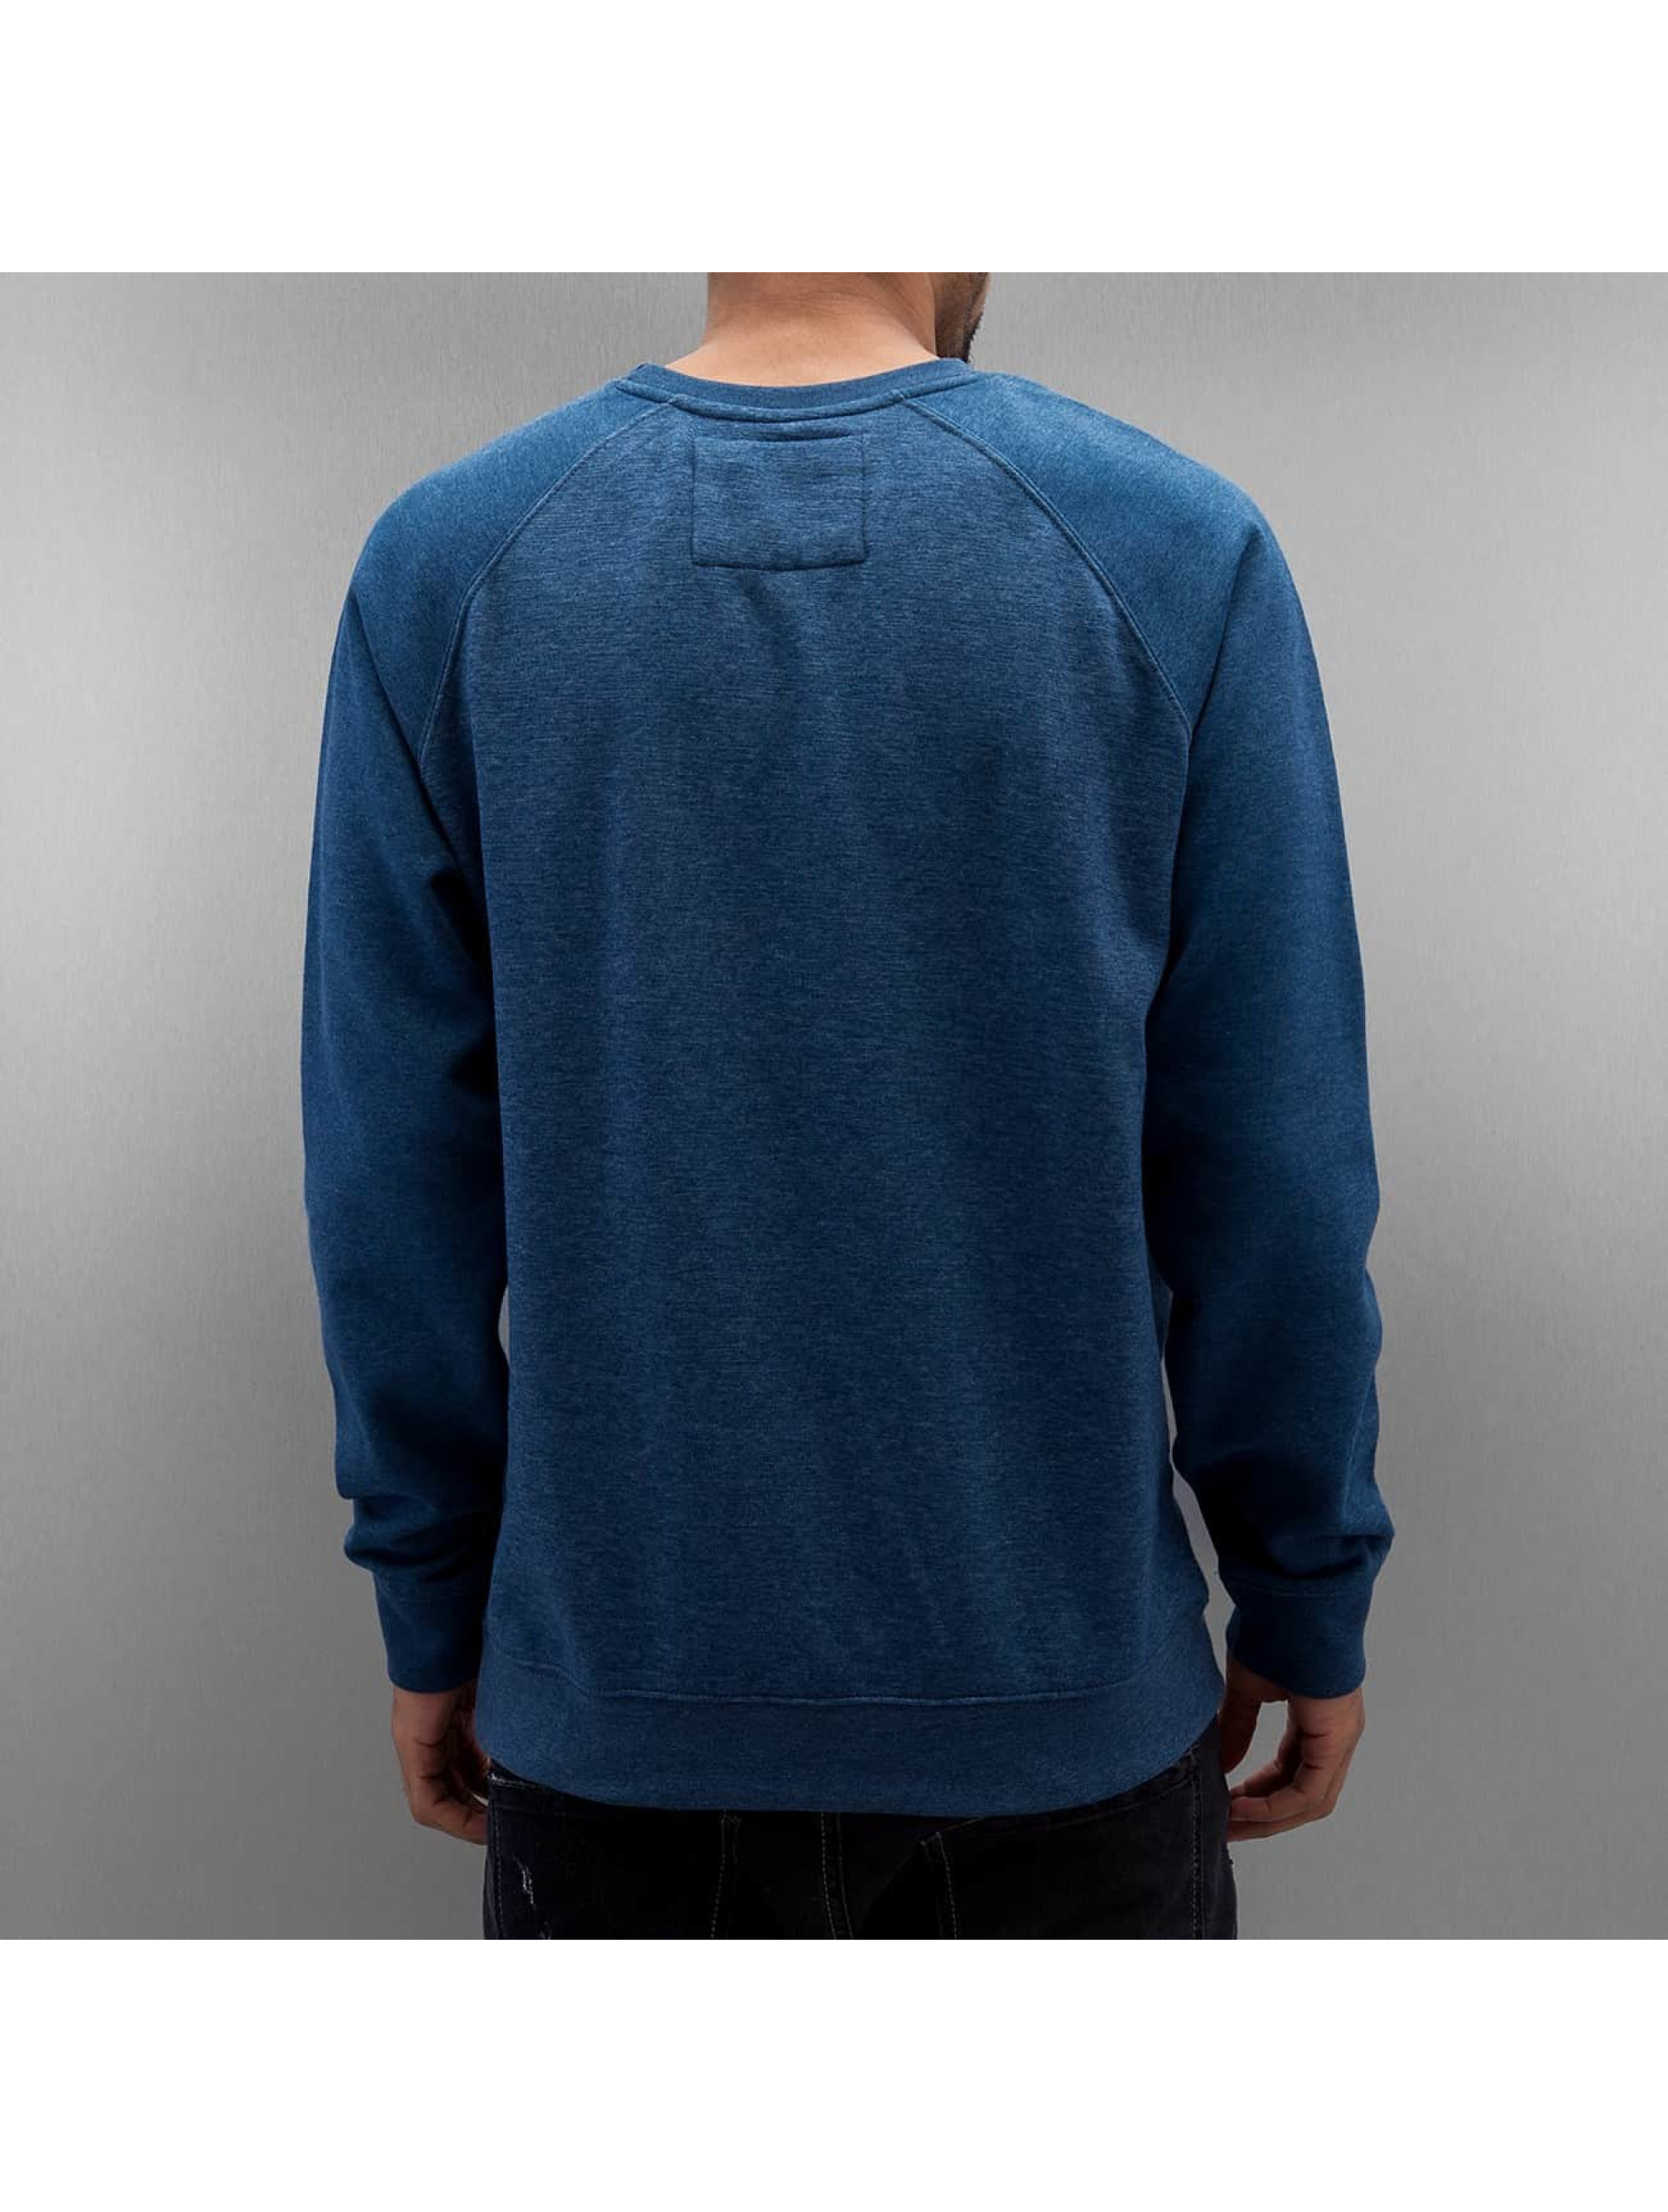 Quiksilver Jumper Everyday blue